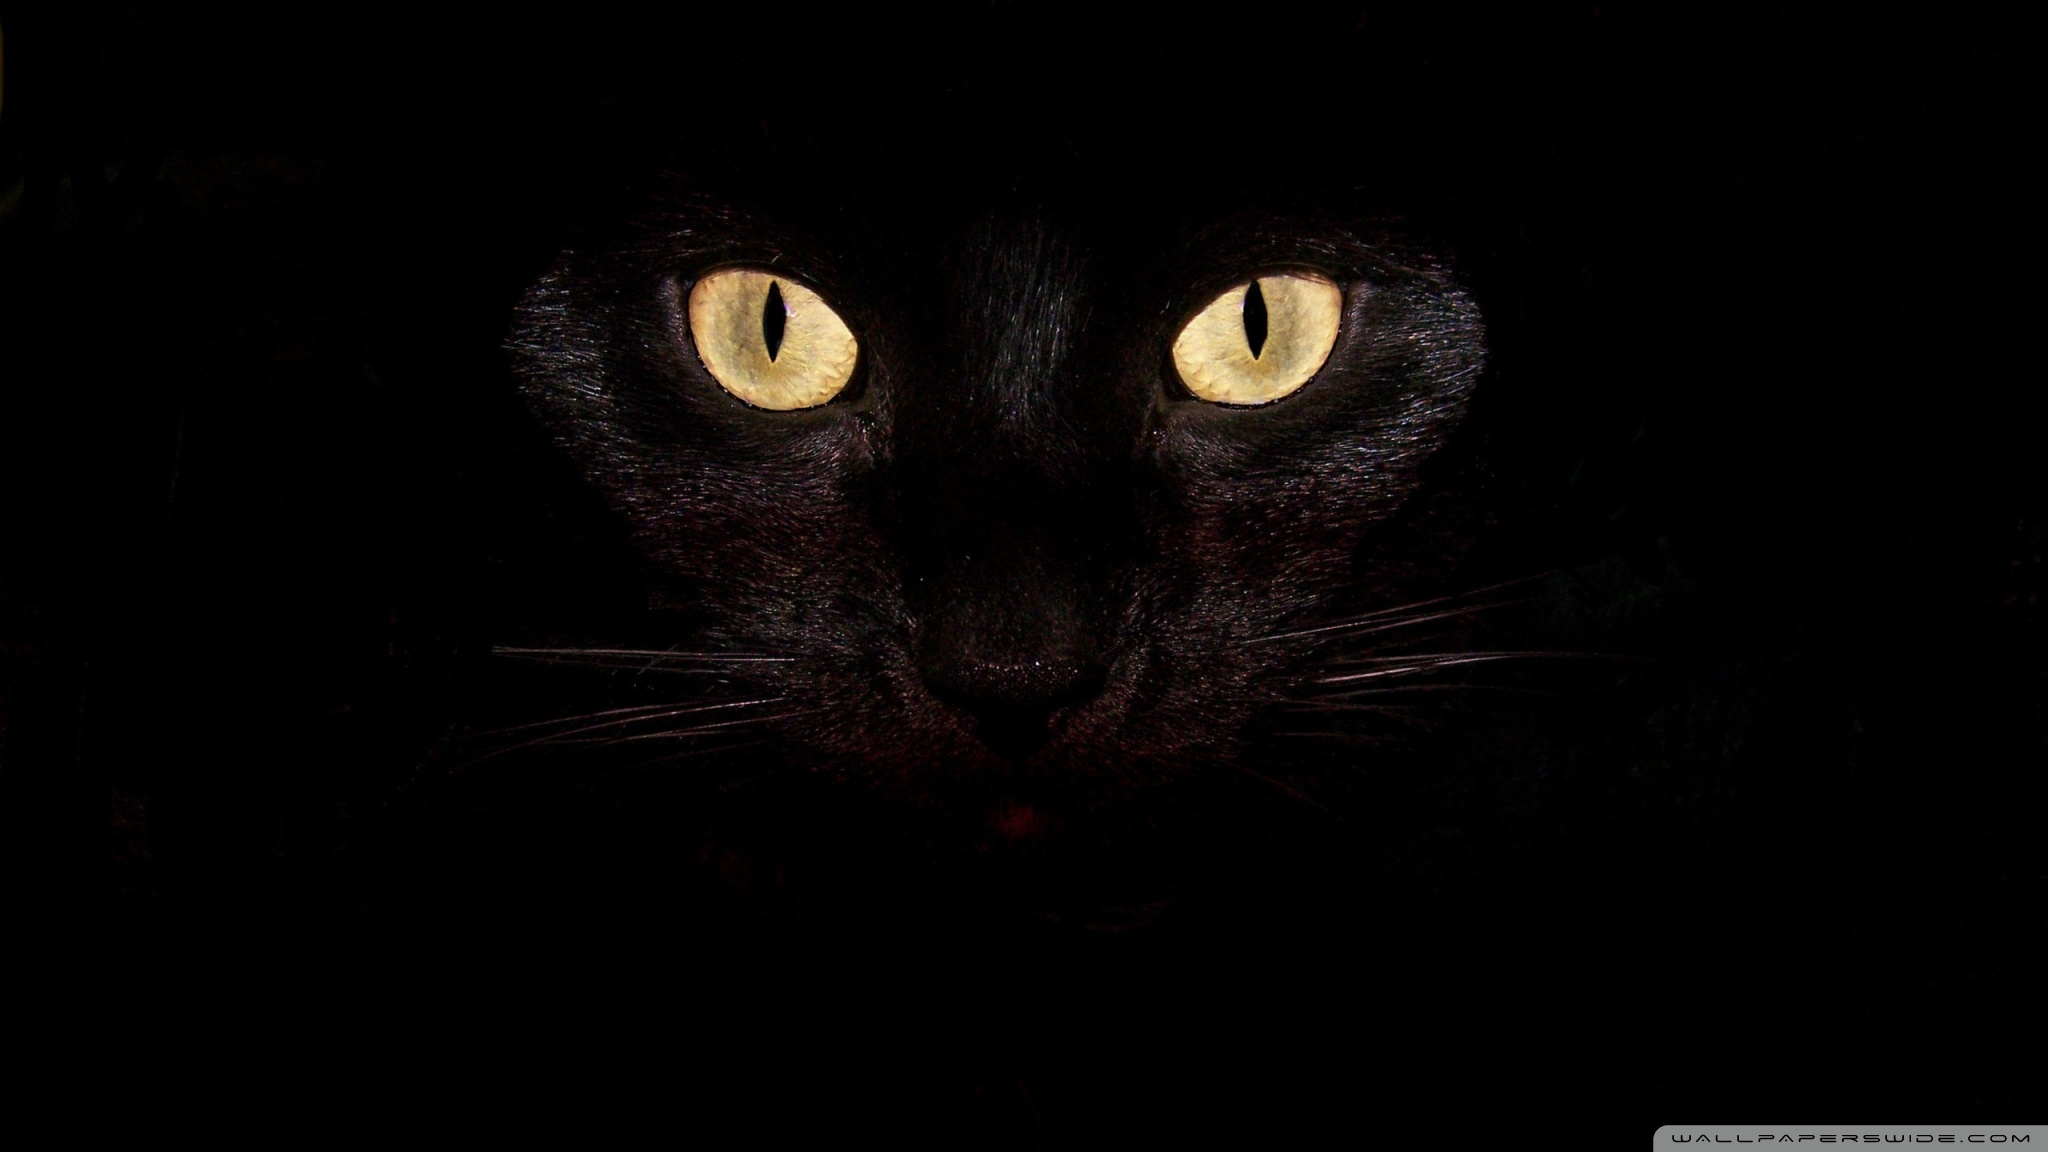 Black Cat Eyes Wallpaper: Horse HD Wallpaper